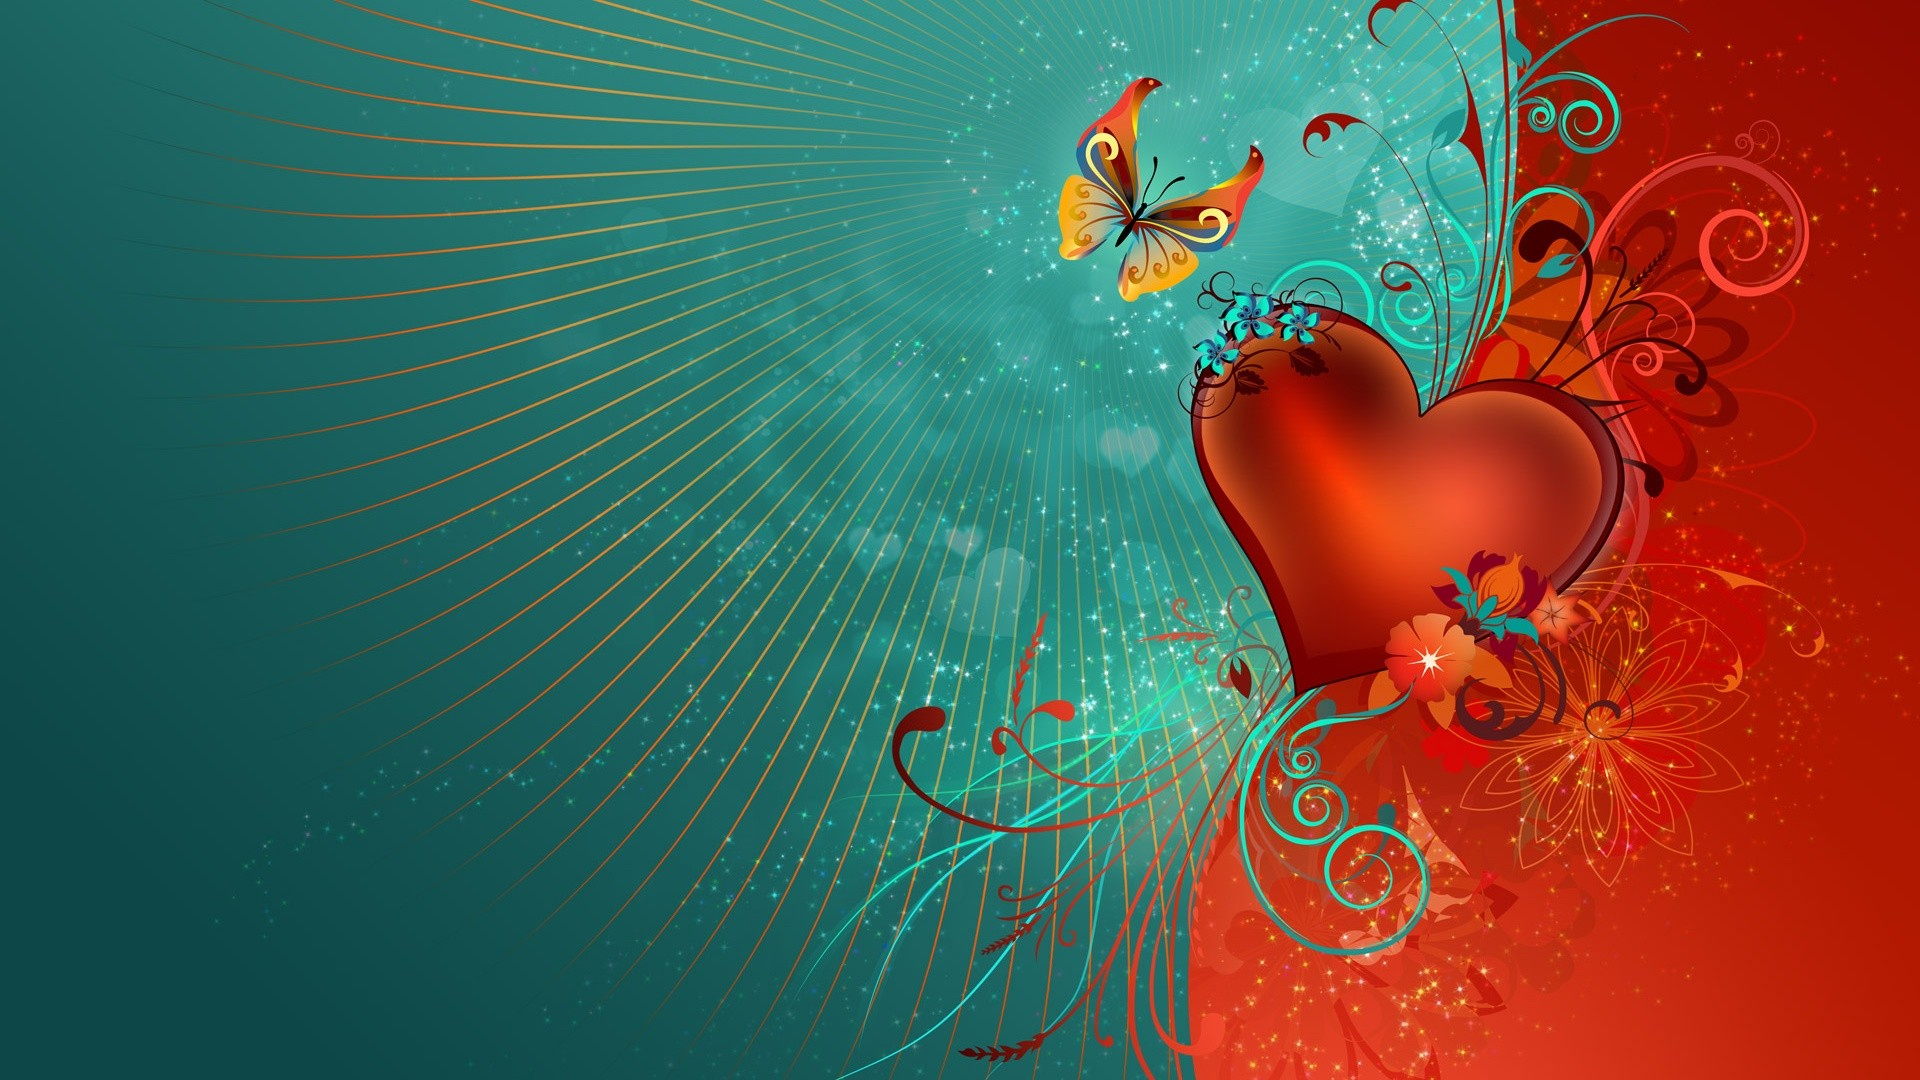 1920x1080 love 3d and hd wallpapers HD wallpaper - 3D Love